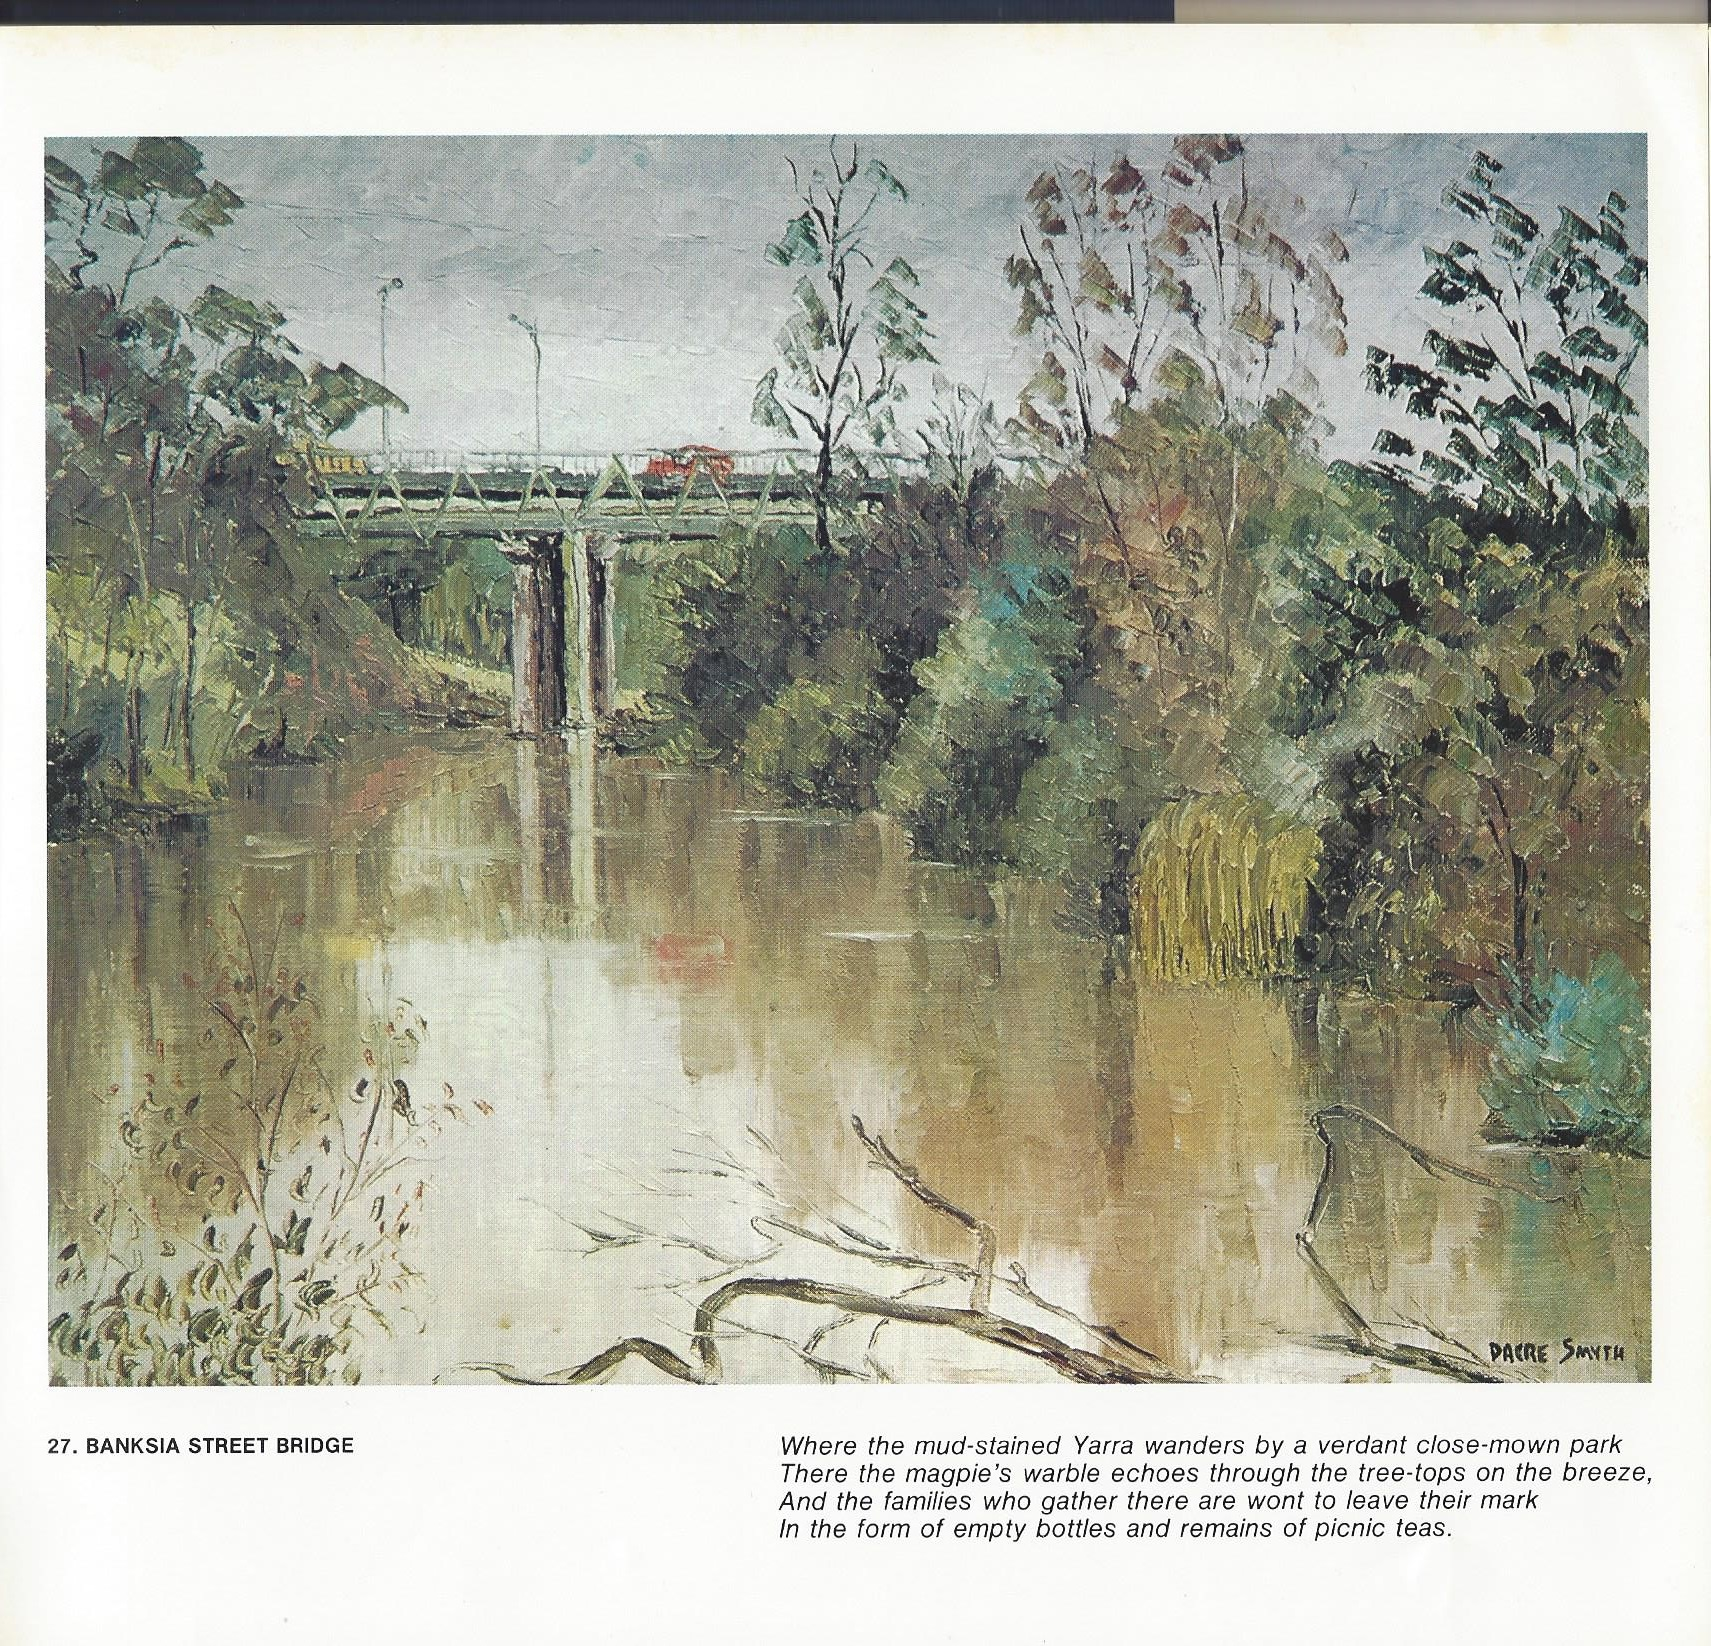 27. Banksia Street Bridge